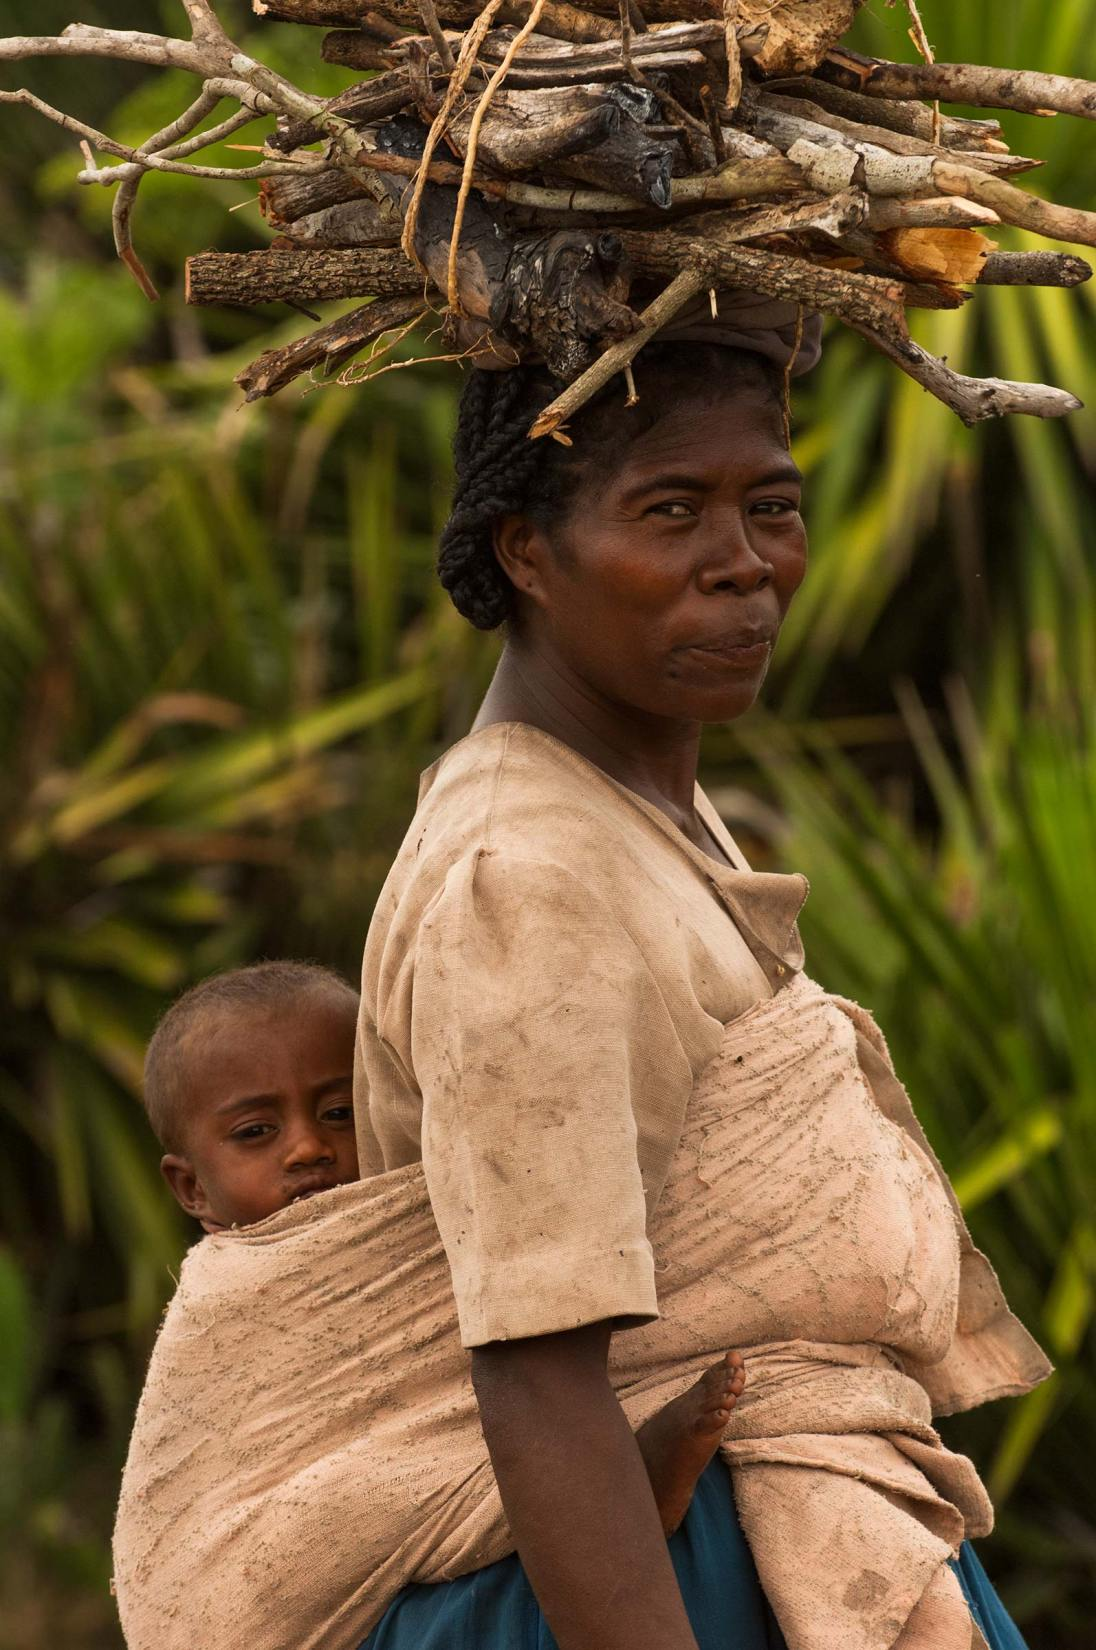 An Antandroy woman is shown carrying sticks on her head and a child on her back. Photo by indigenous person photographer Pete Oxford.